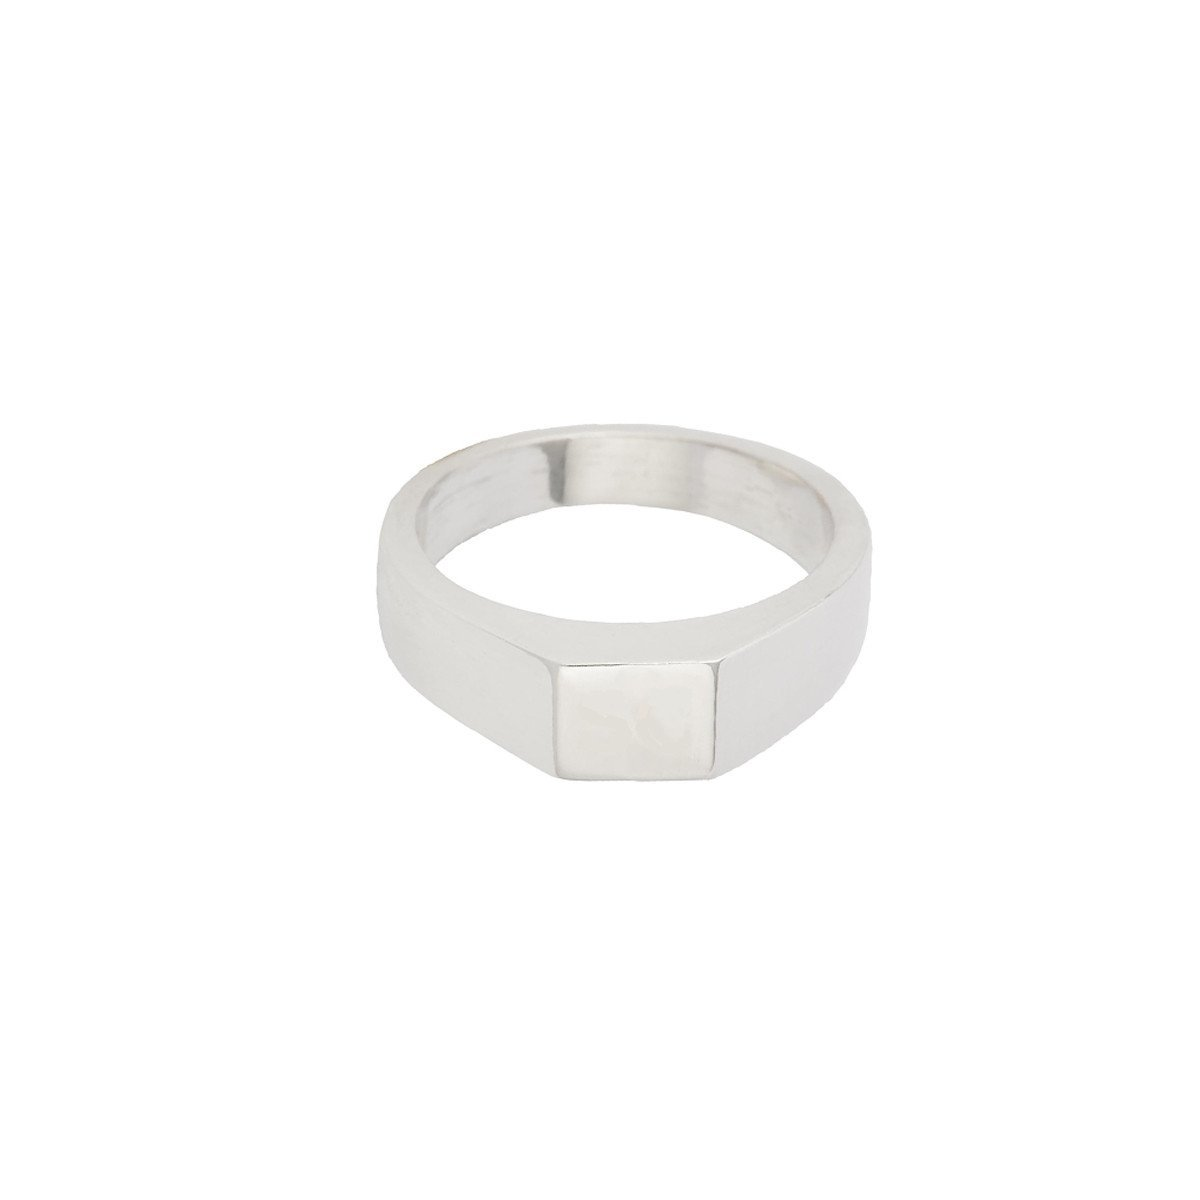 SUSAN CAPLAN CONTEMPORARY STERLING SILVER SMALL SQUARE SIGNET RING